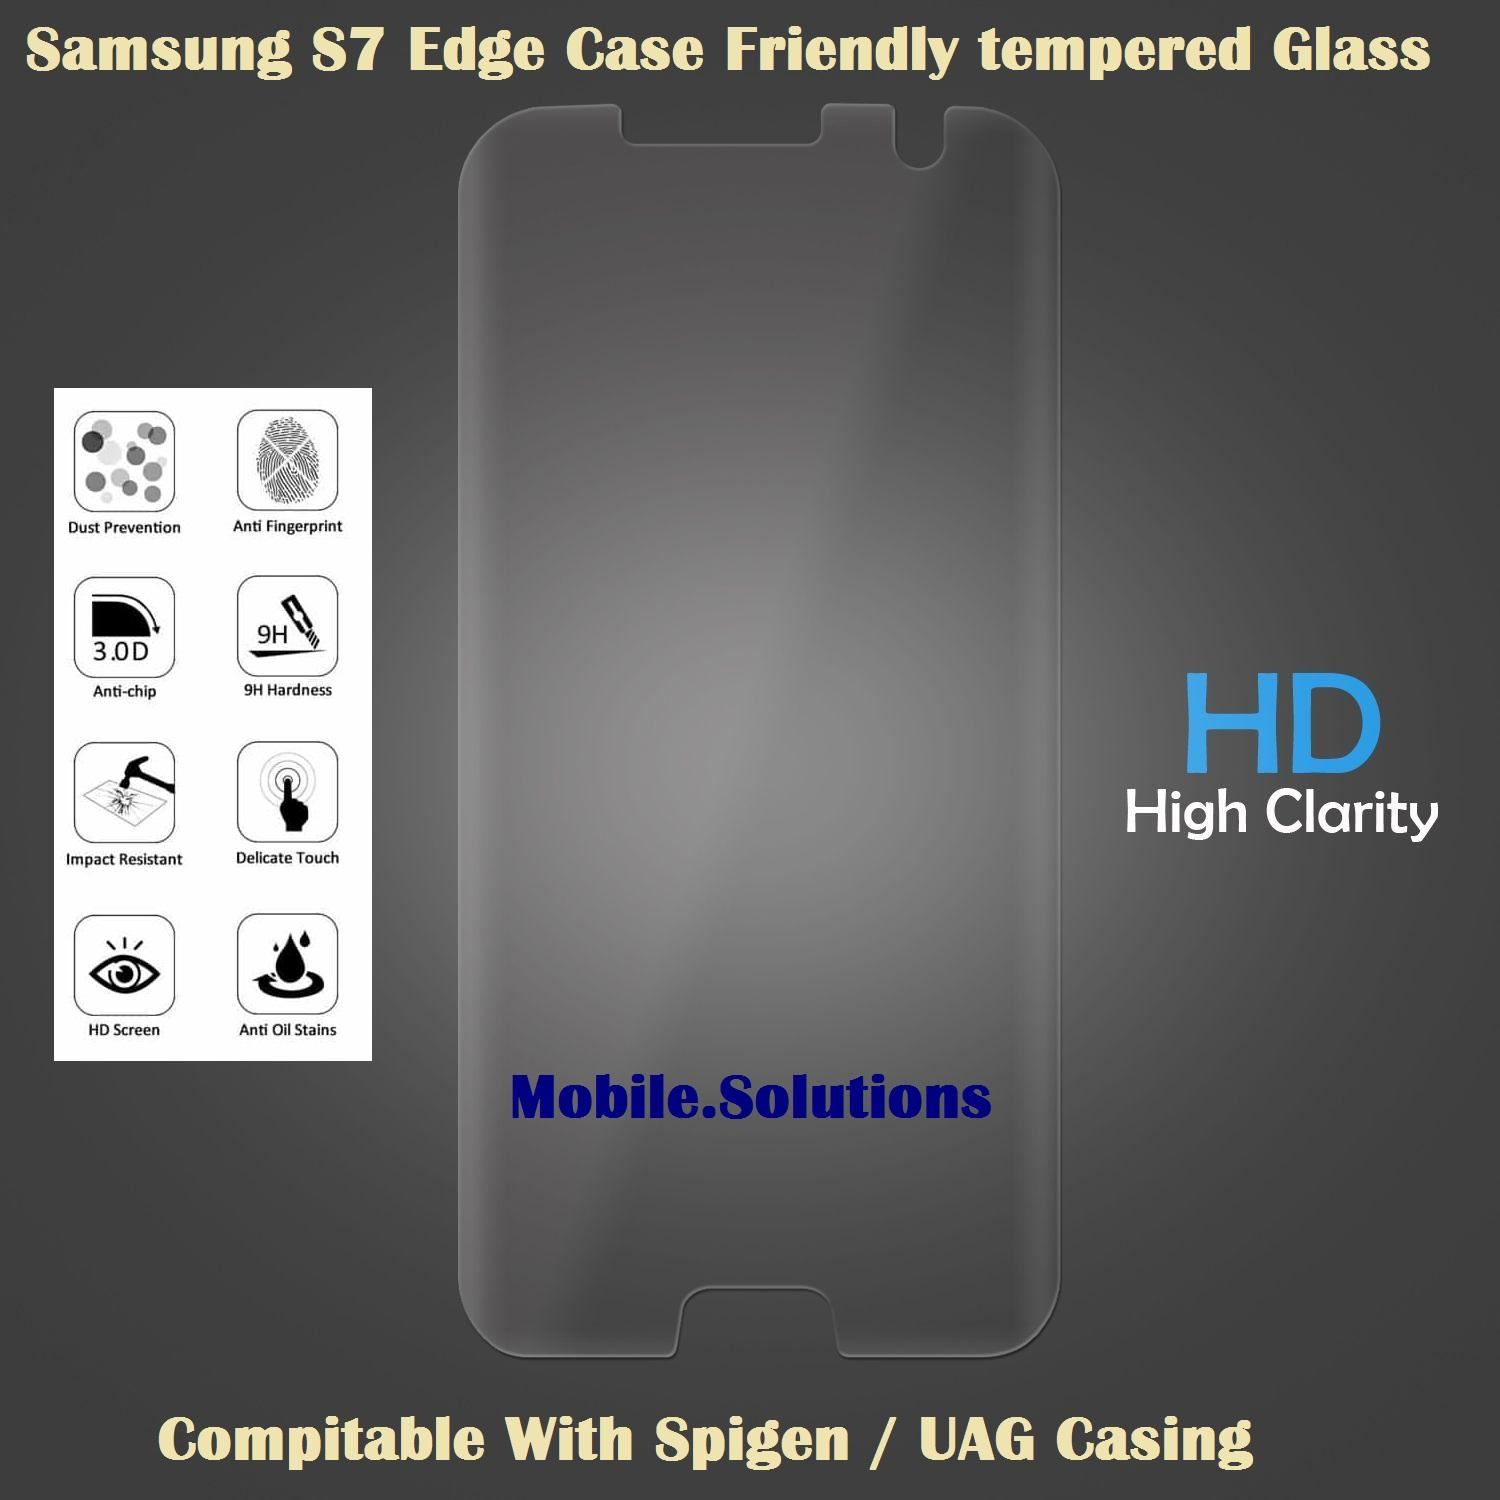 Samsung S7 Edge Full Coverage Tempered Glass (Case Friendly) (Clear)